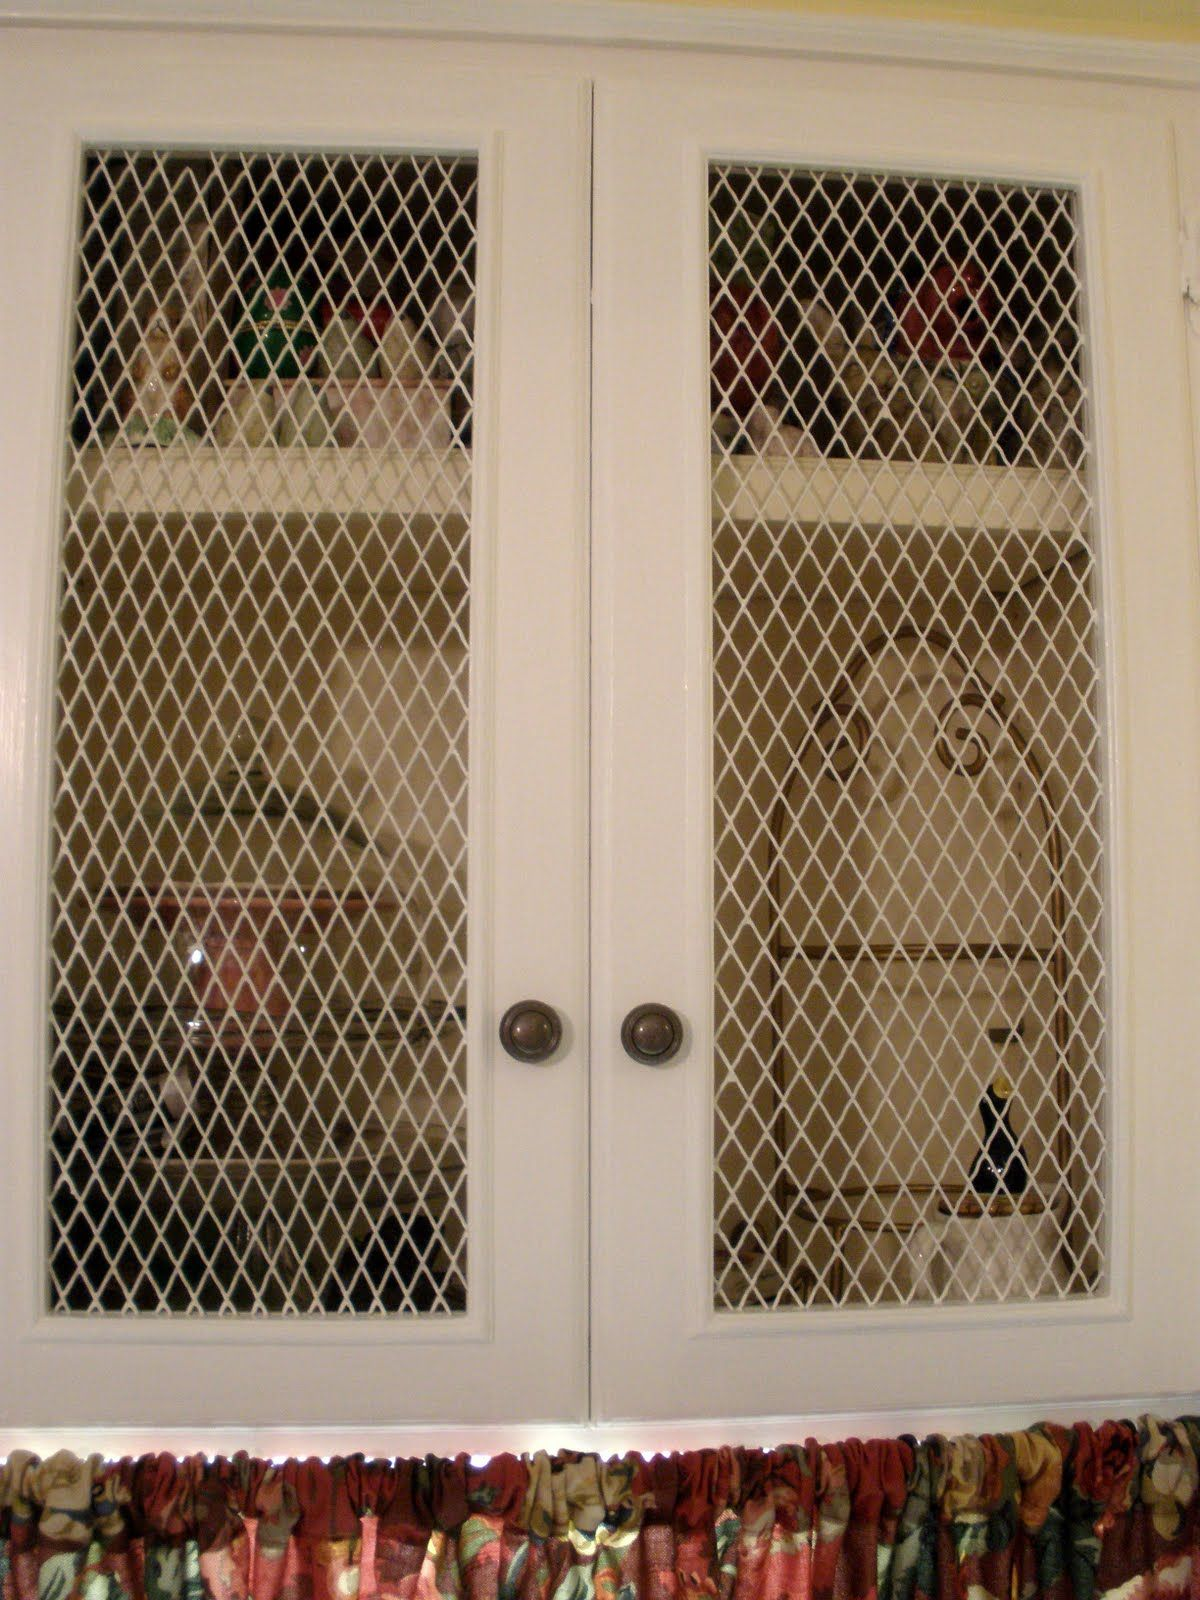 wired glass cabinet doors - Google Search | WJL | Pinterest | Glass ...